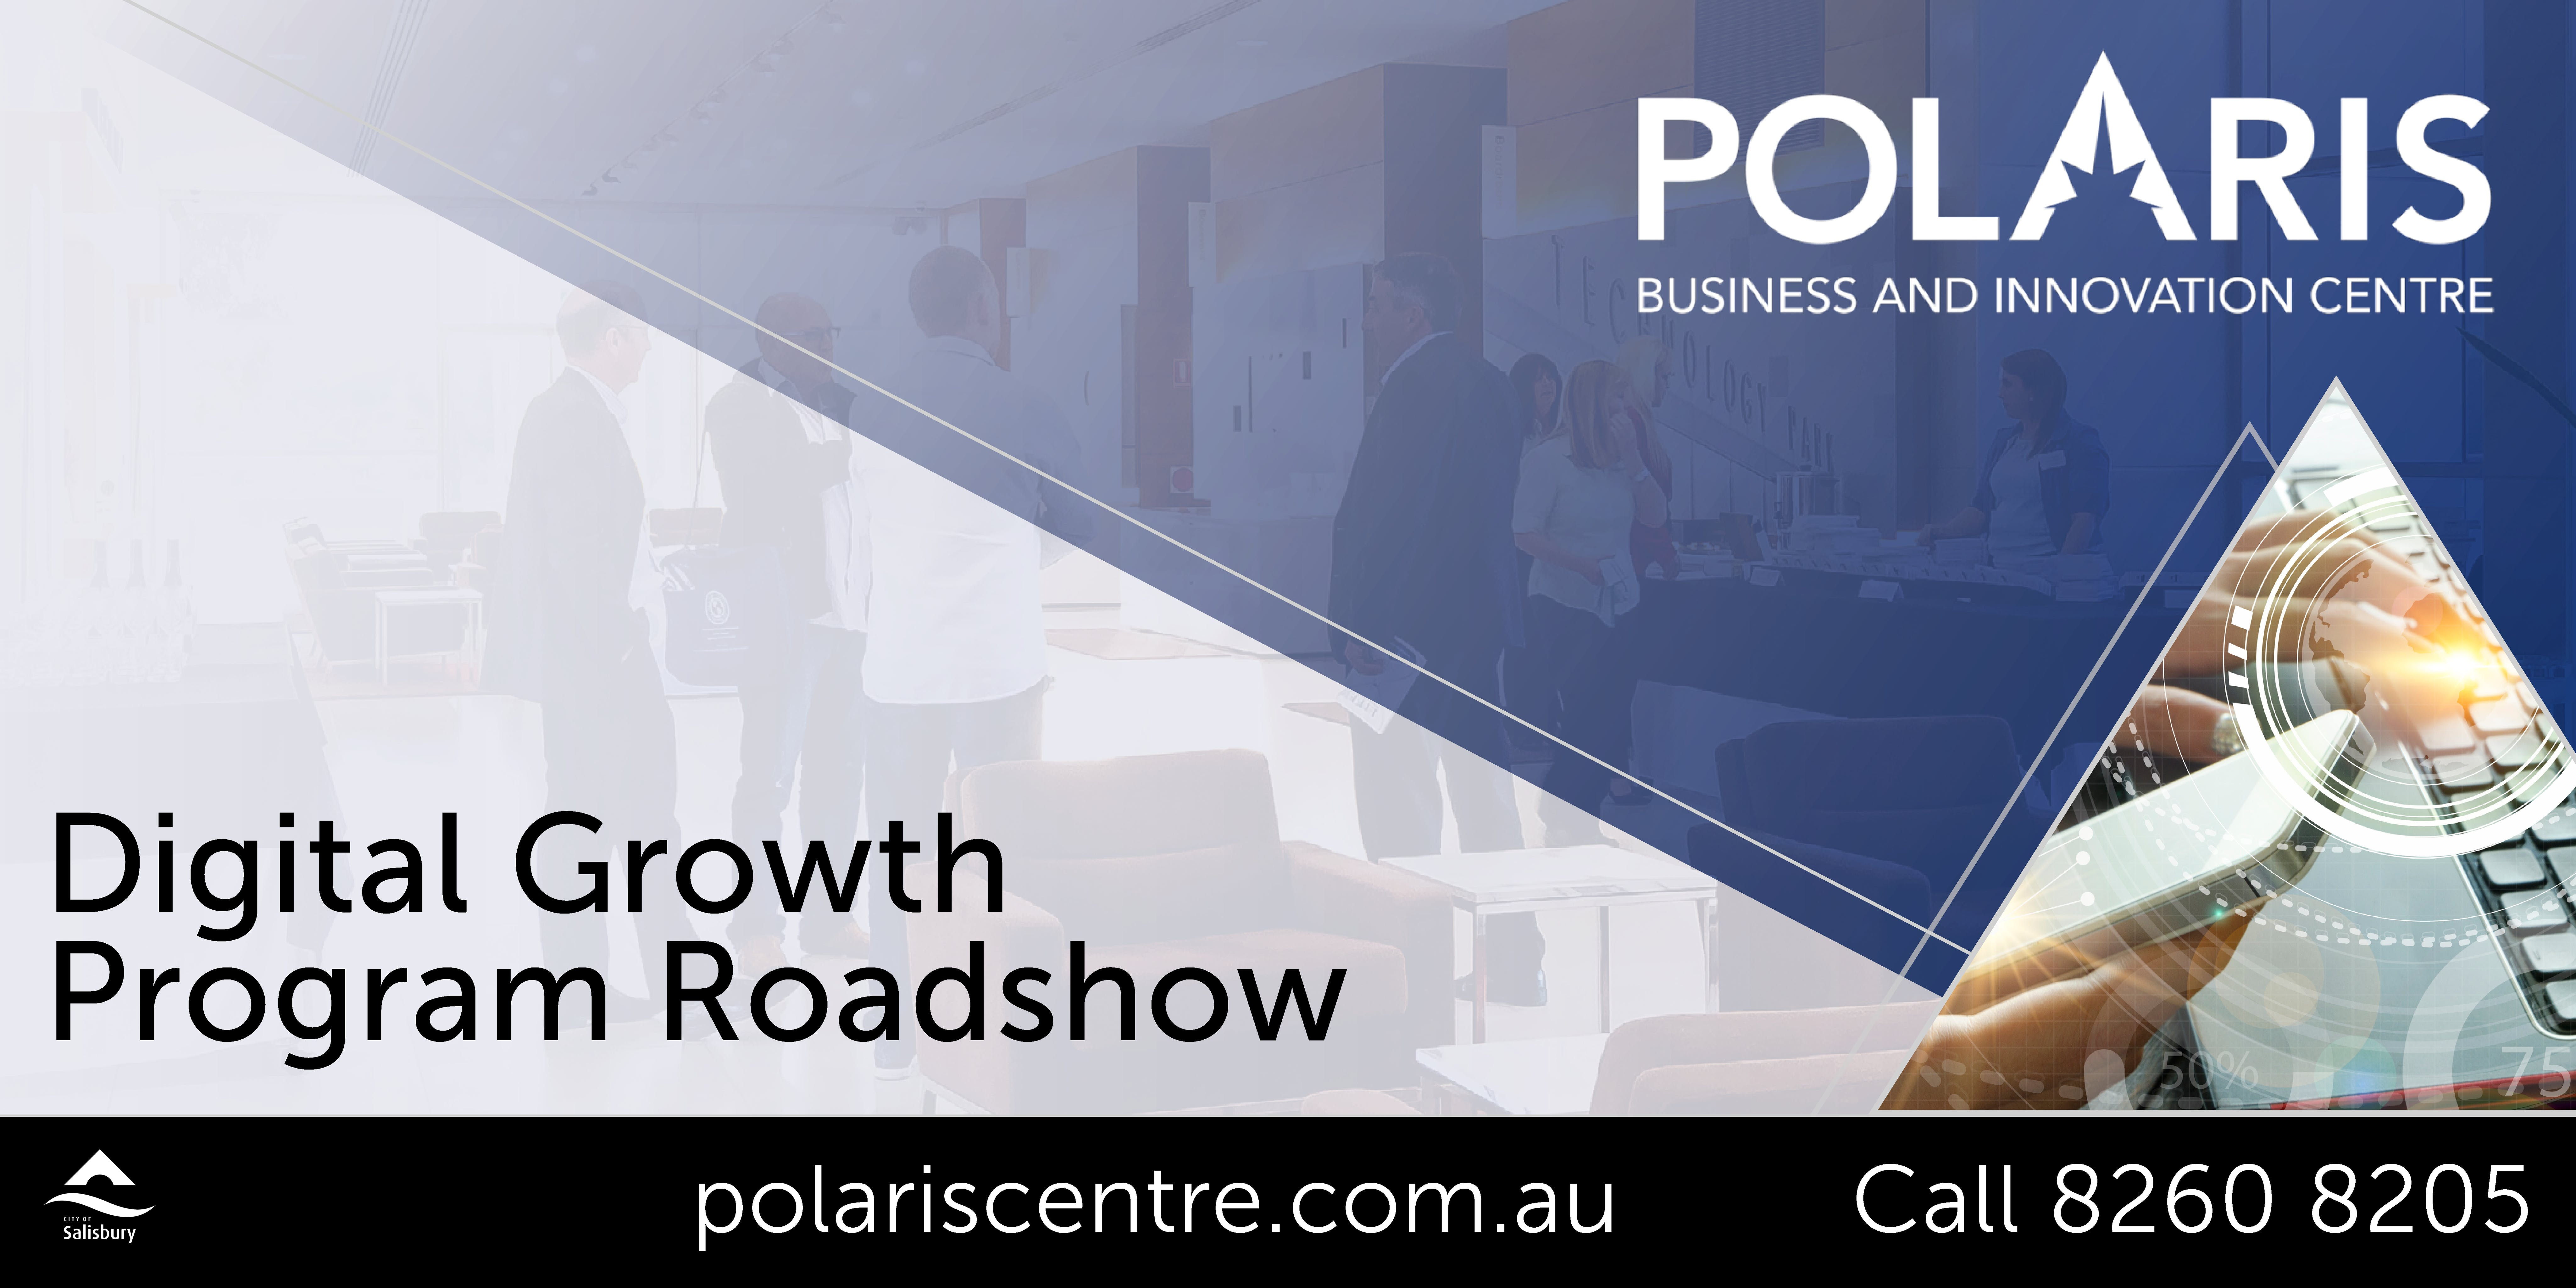 Digital Growth Roadshow - Town of Walkerville - 9 November 2018